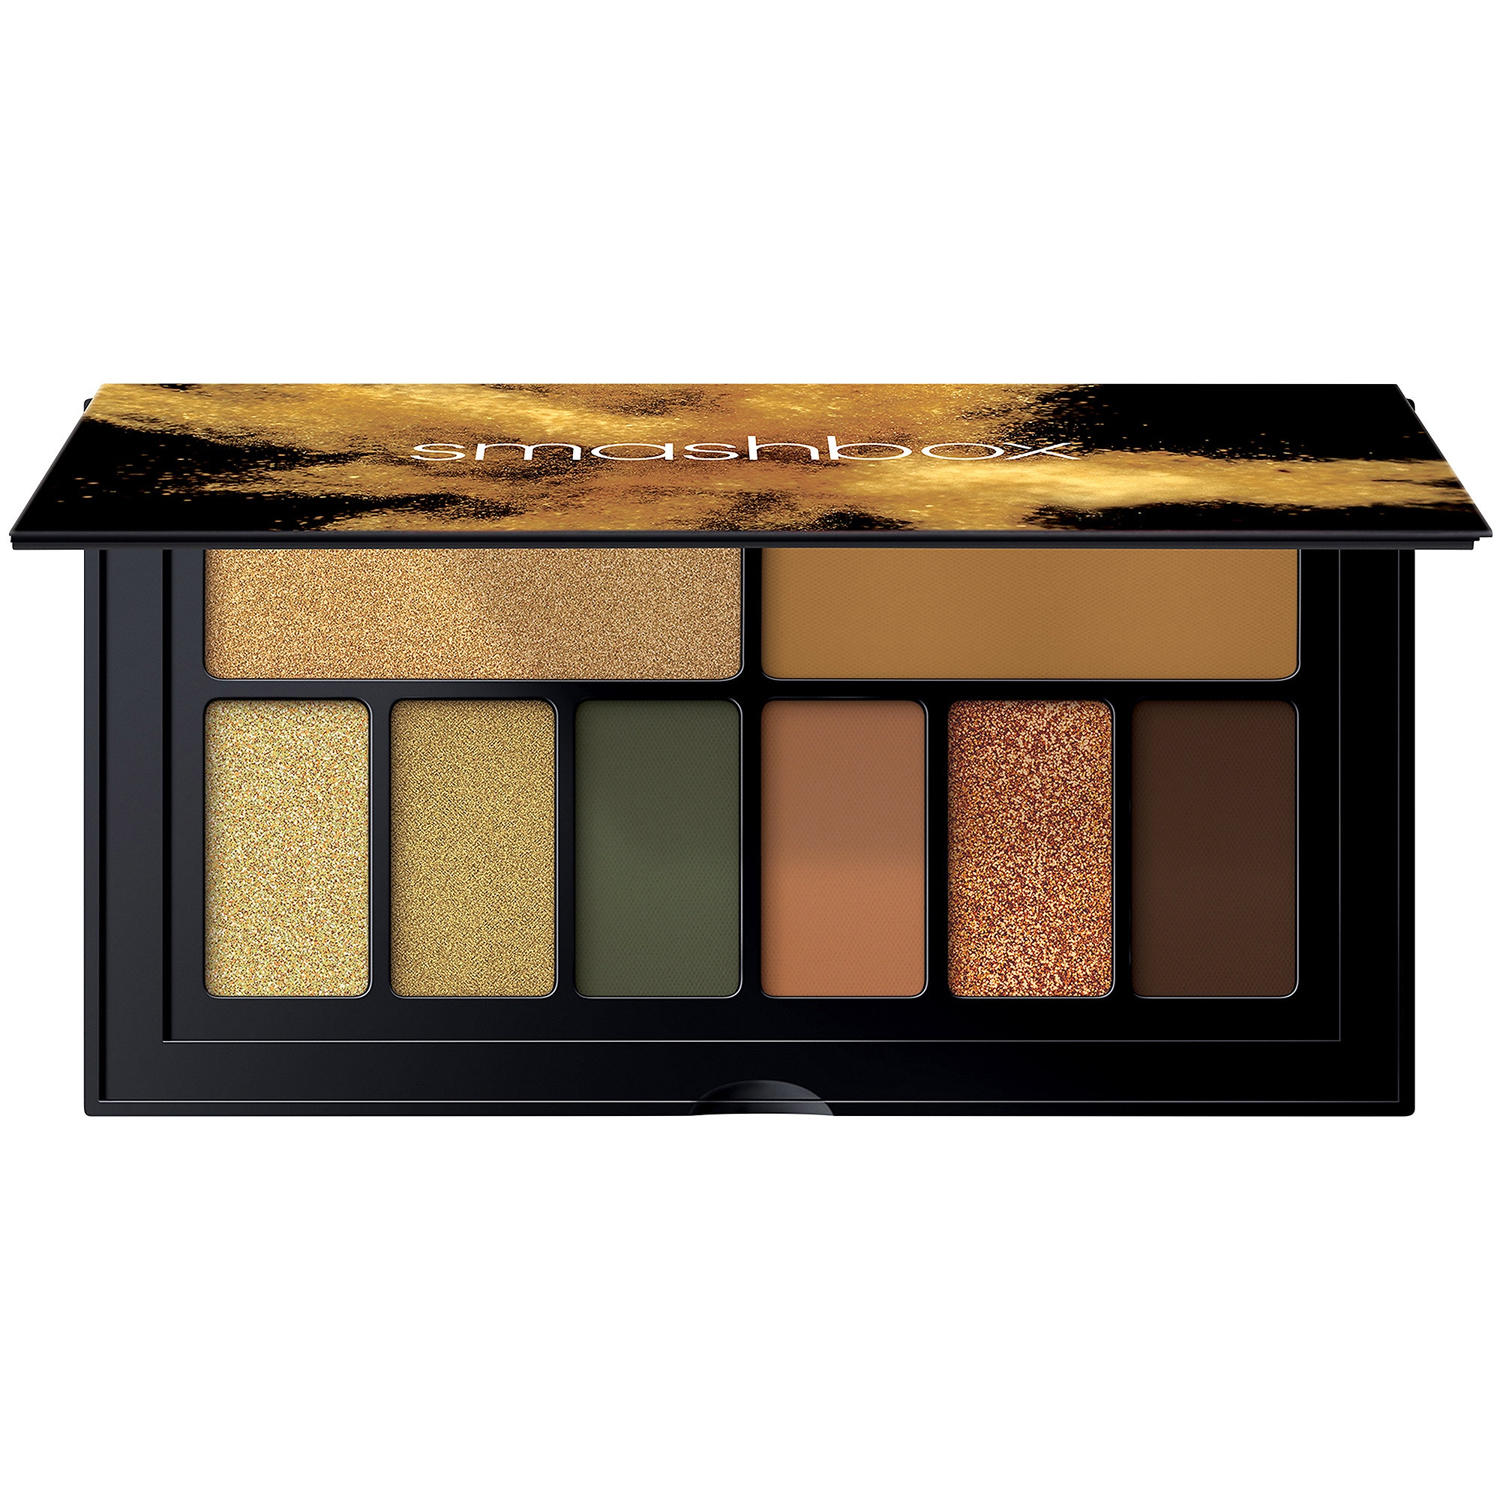 Smashbox Cover Shot: Desert Eyeshadow Palette